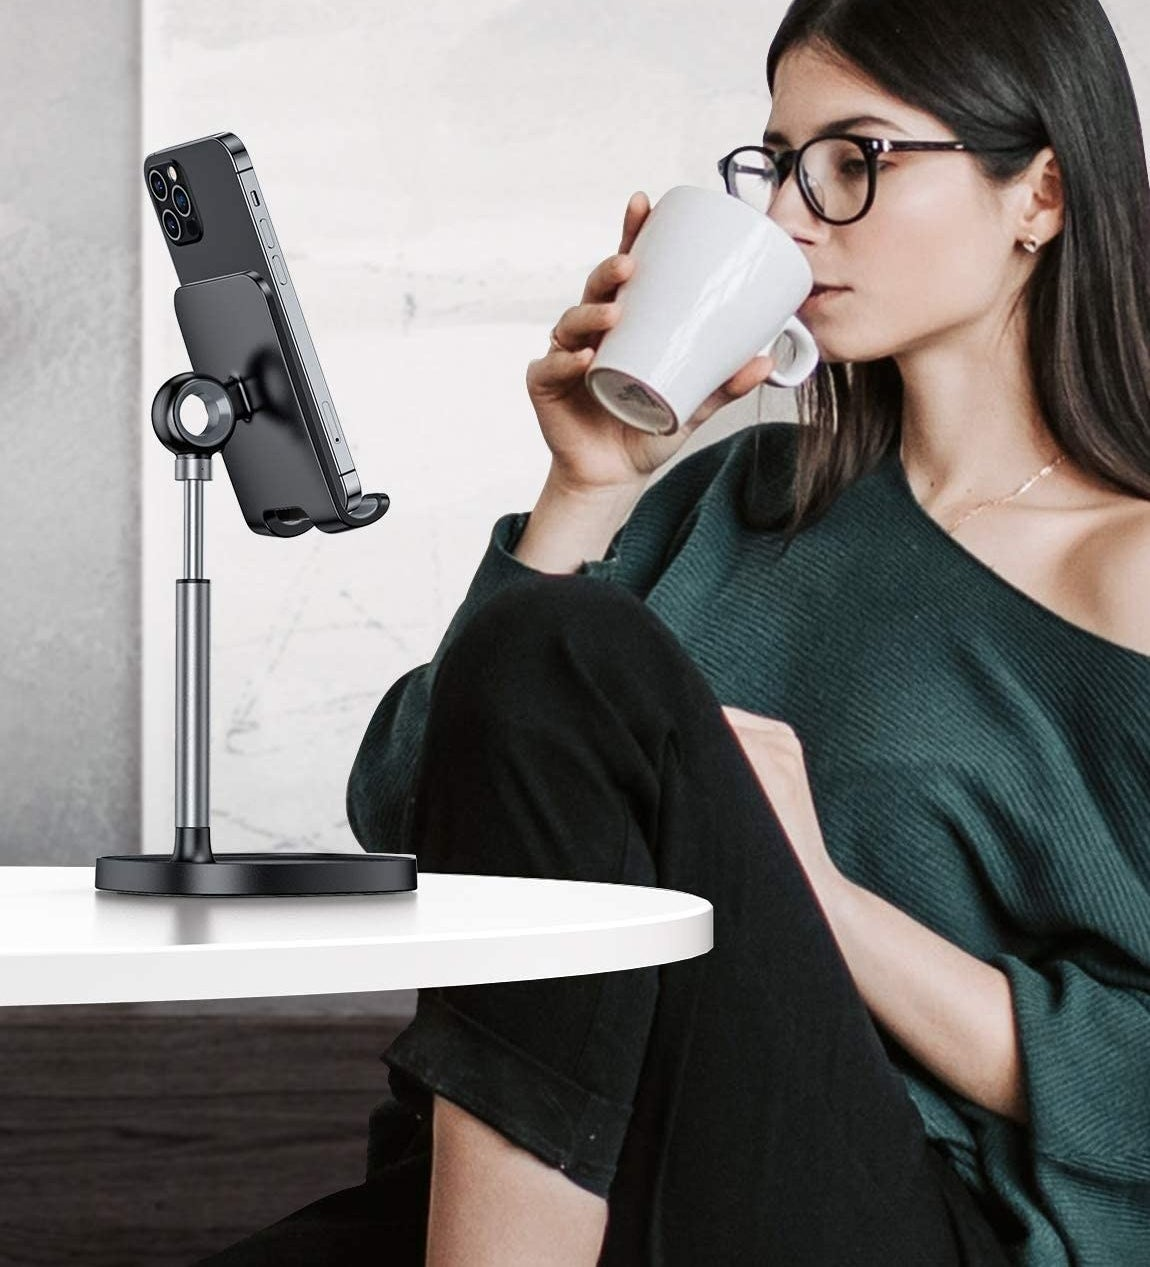 A model watching something on their phone which is propped up to eye level on a black stand on a desk